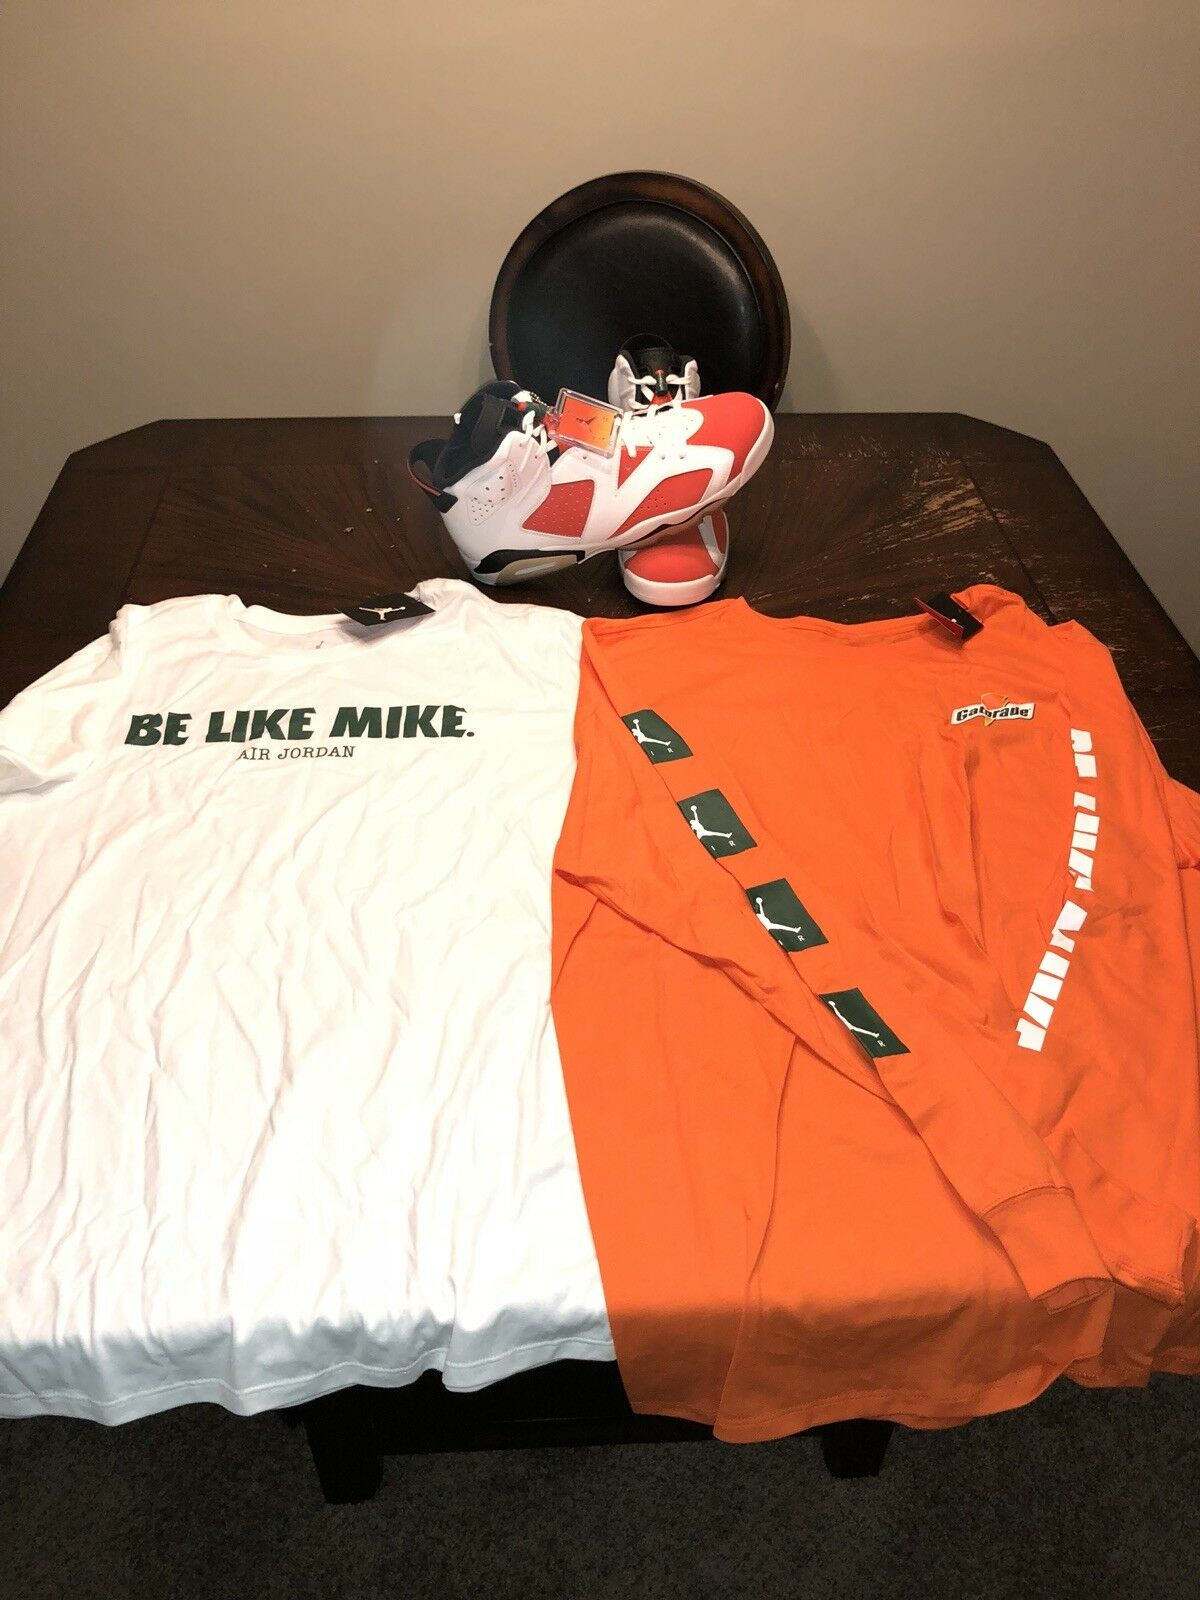 Air shirts. jordan 6 retro (mike) mit zusammenpassende shirts. Air 1a3c34